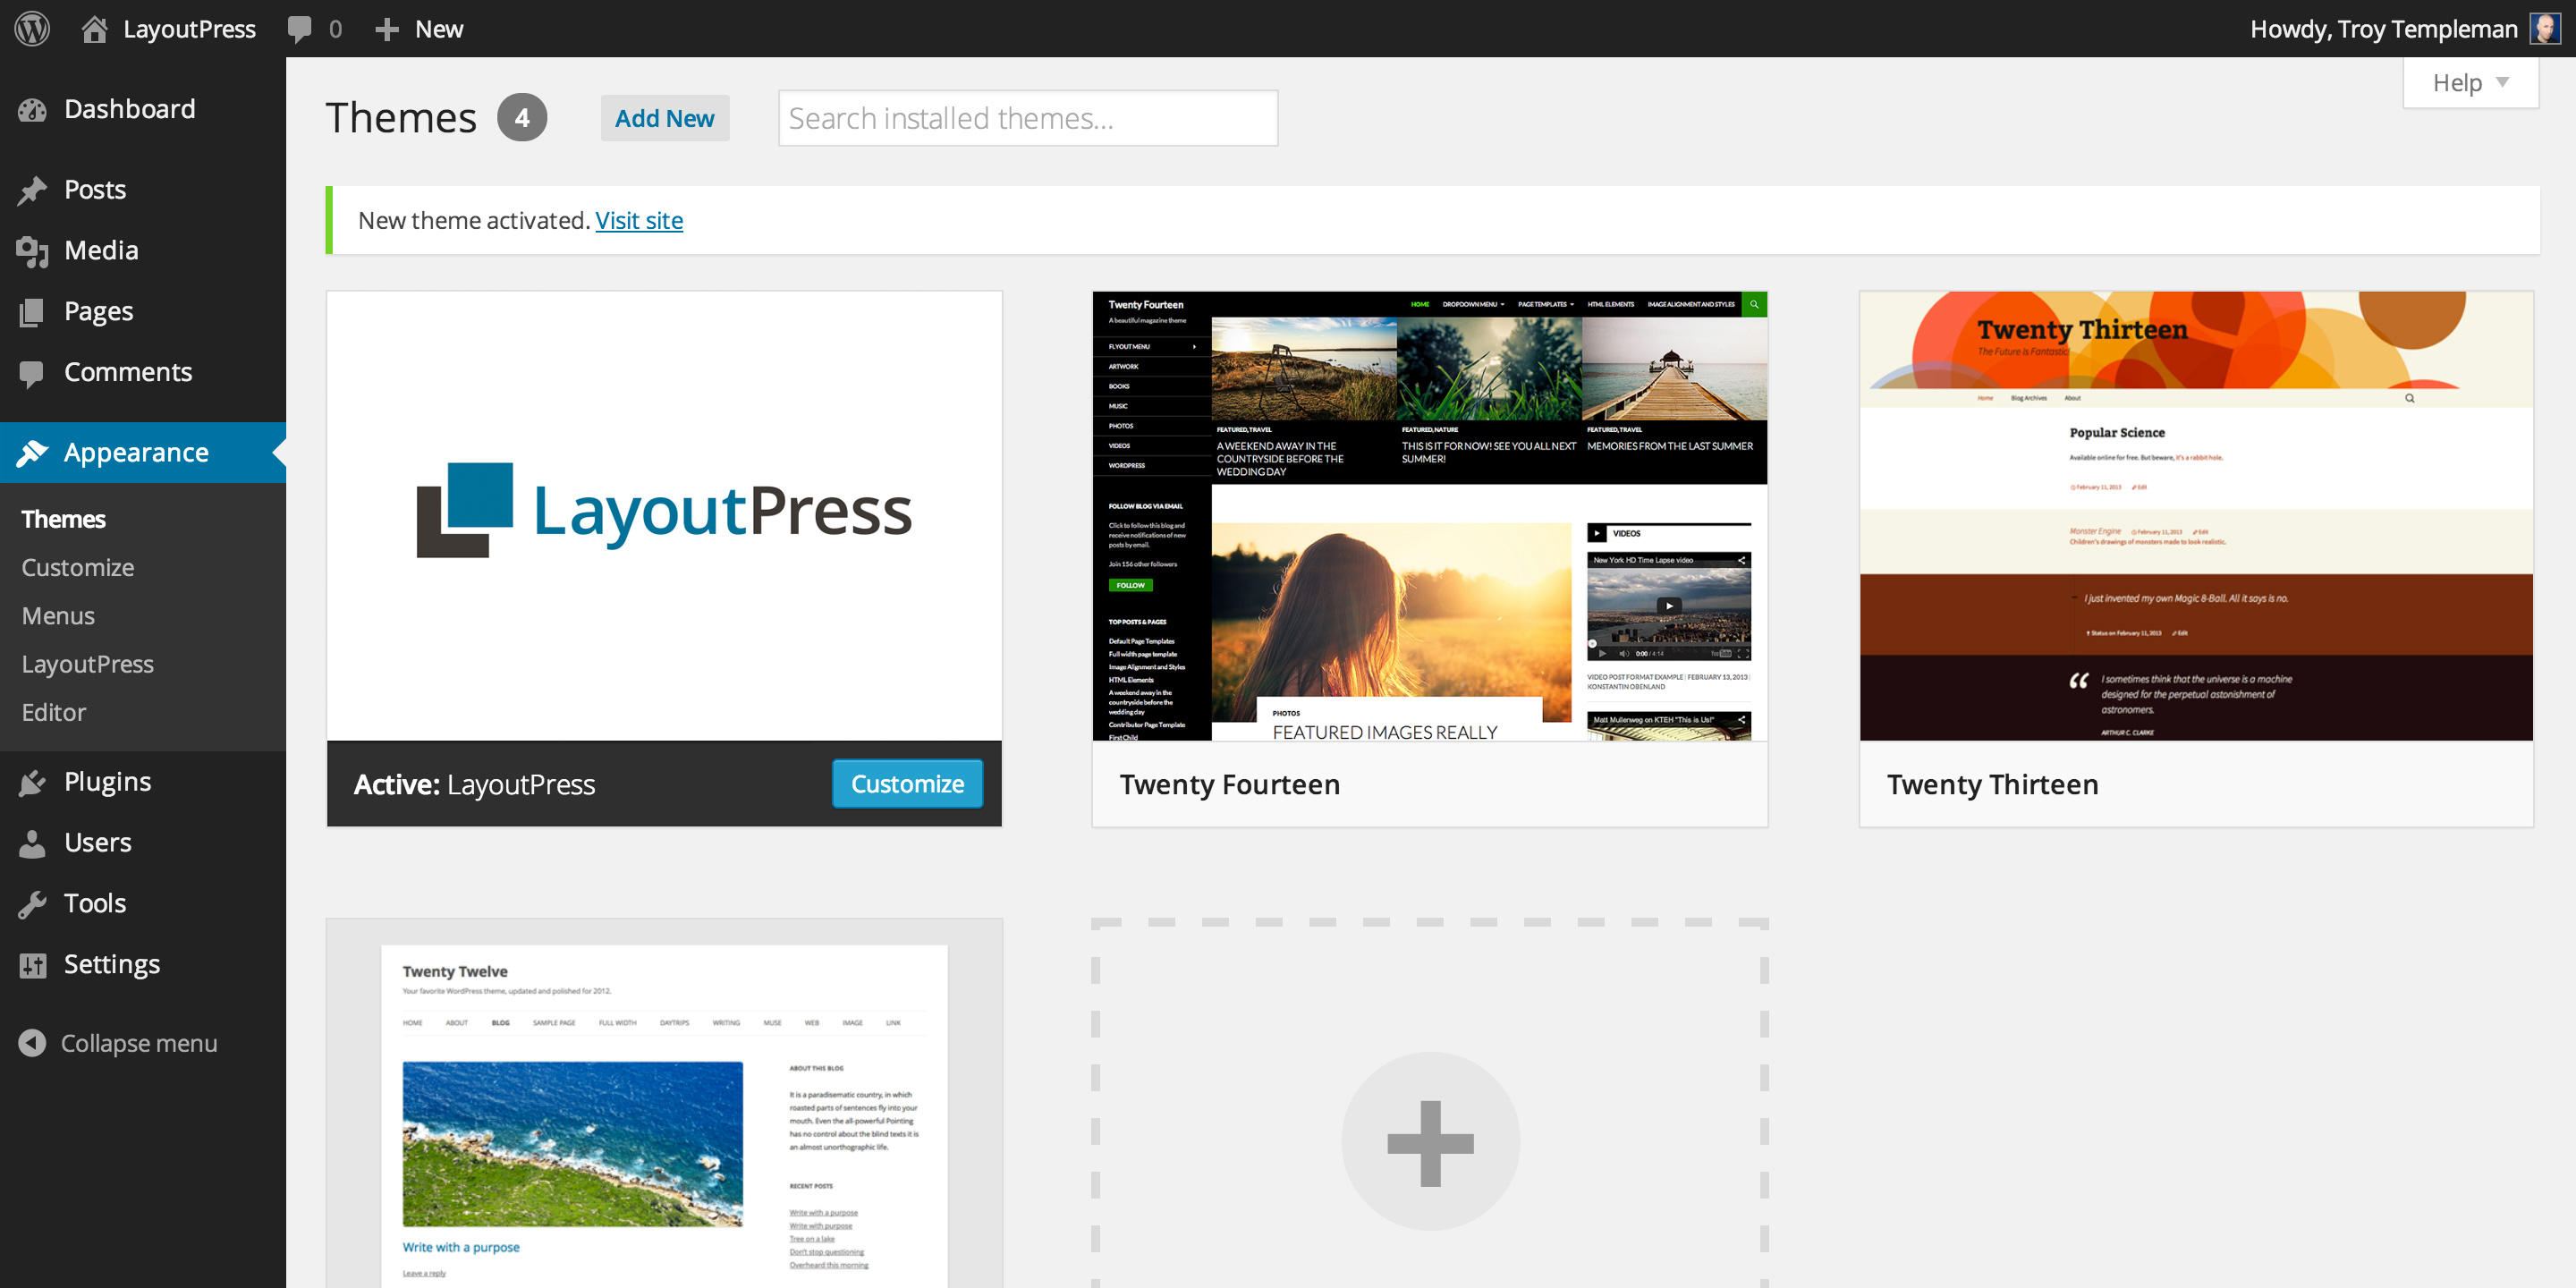 LayoutPress Install Theme